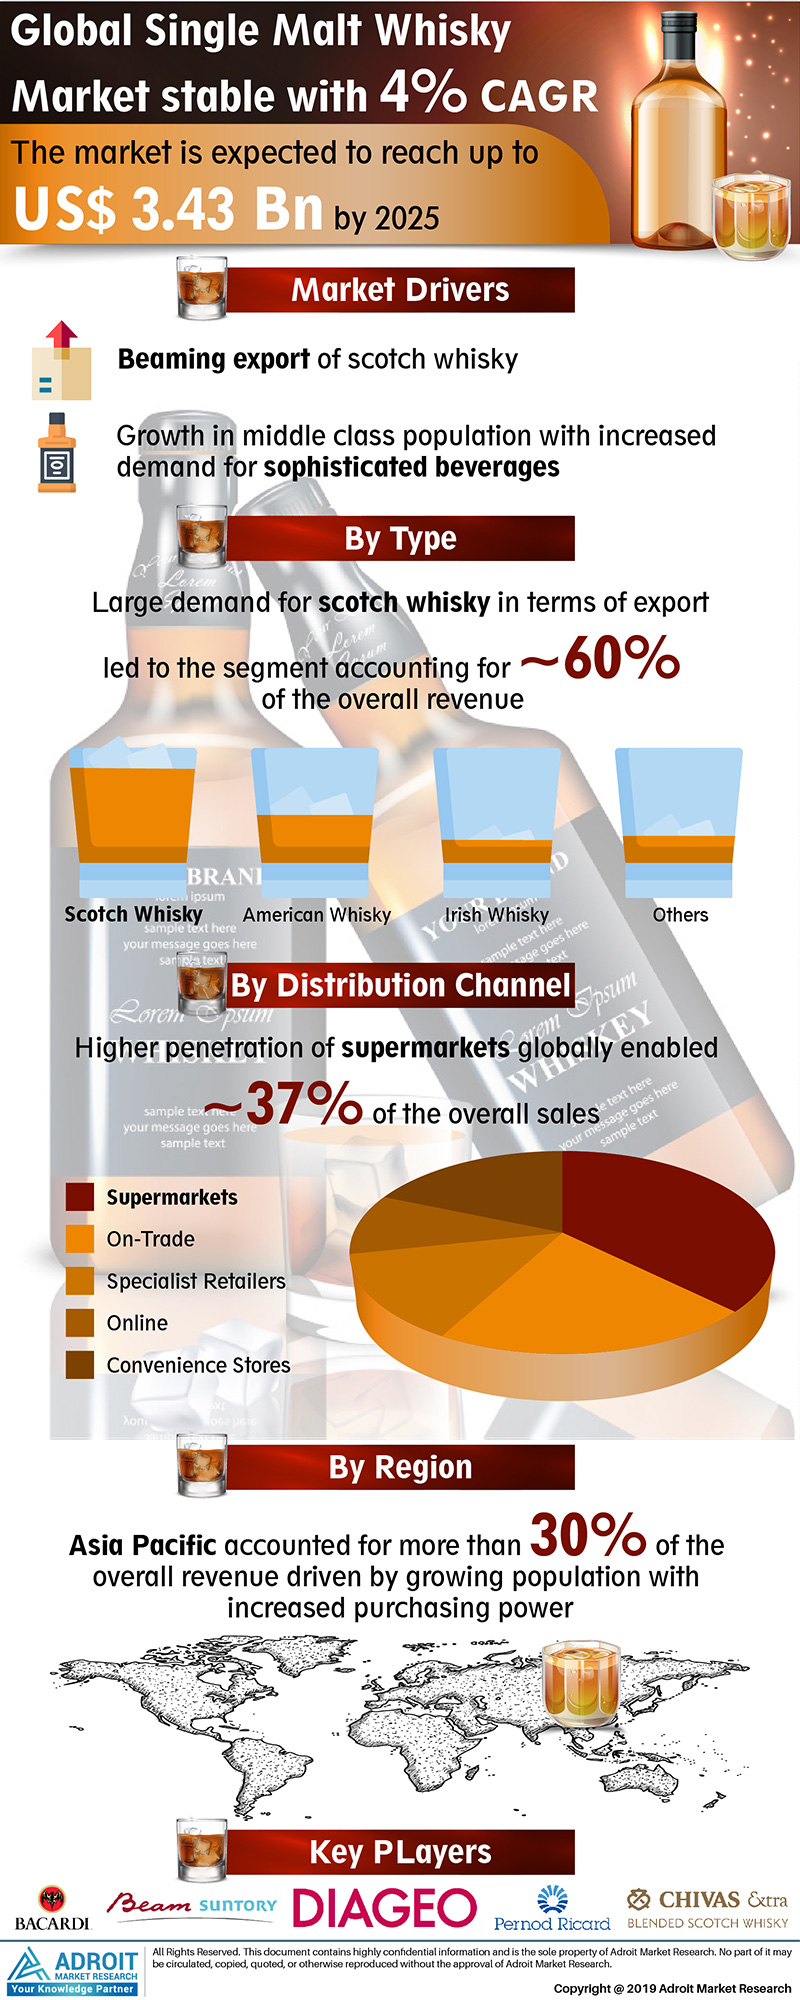 Global Single Malt Whisky Market Size 2017 By Type, Distribution Channel, Region and Forecast 2019 to 2025